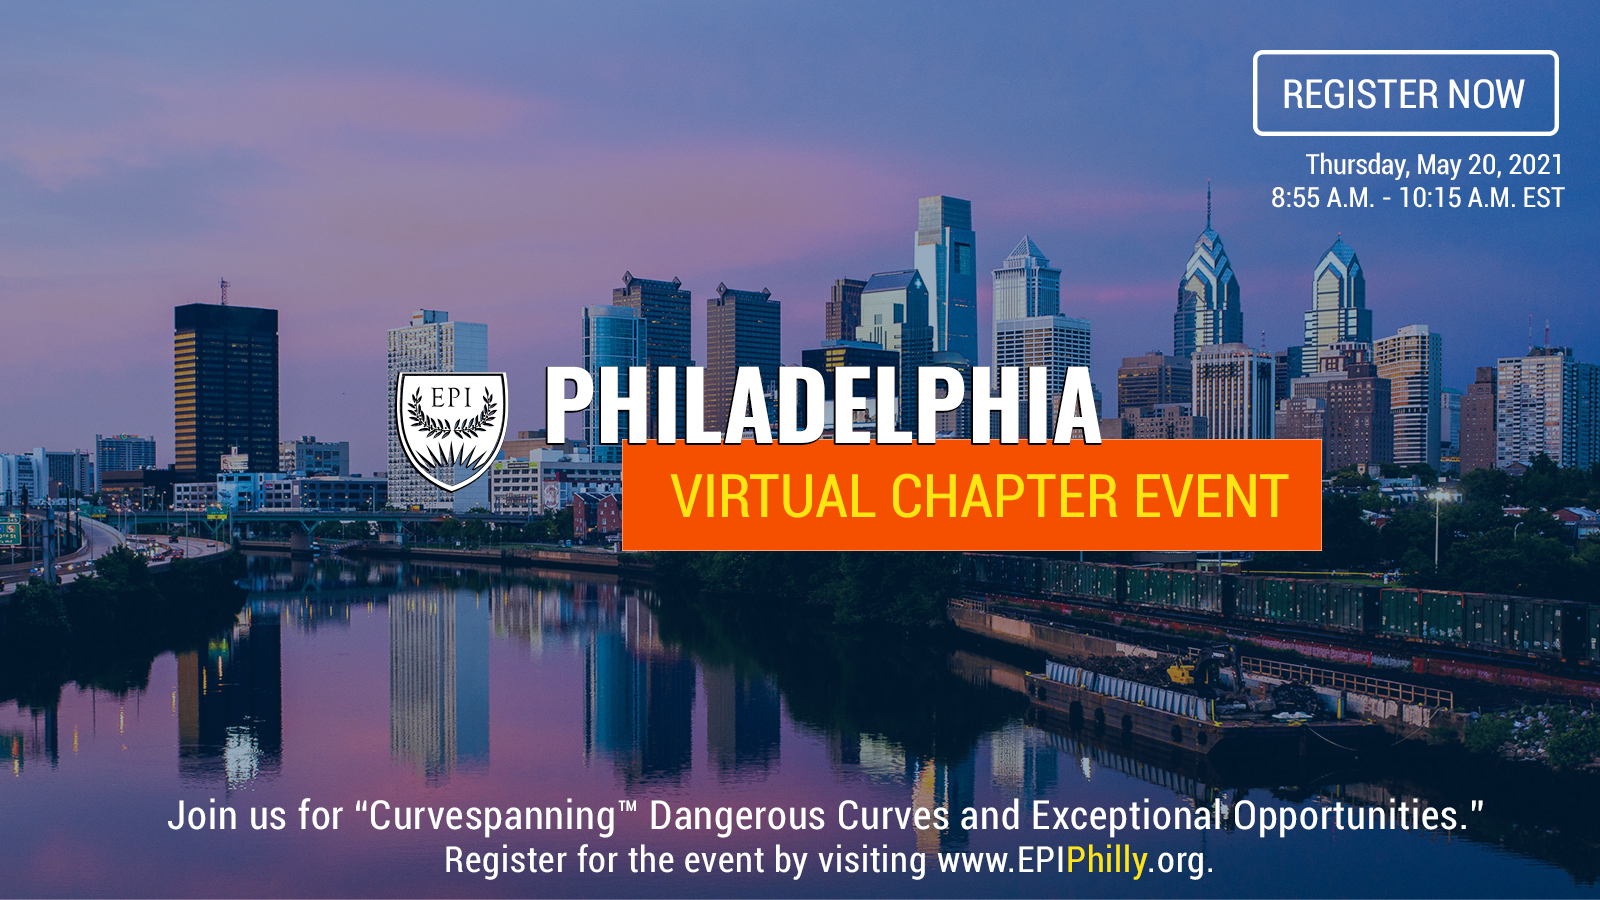 Curvespanning™ Dangerous Curves & Exceptional Opportunities